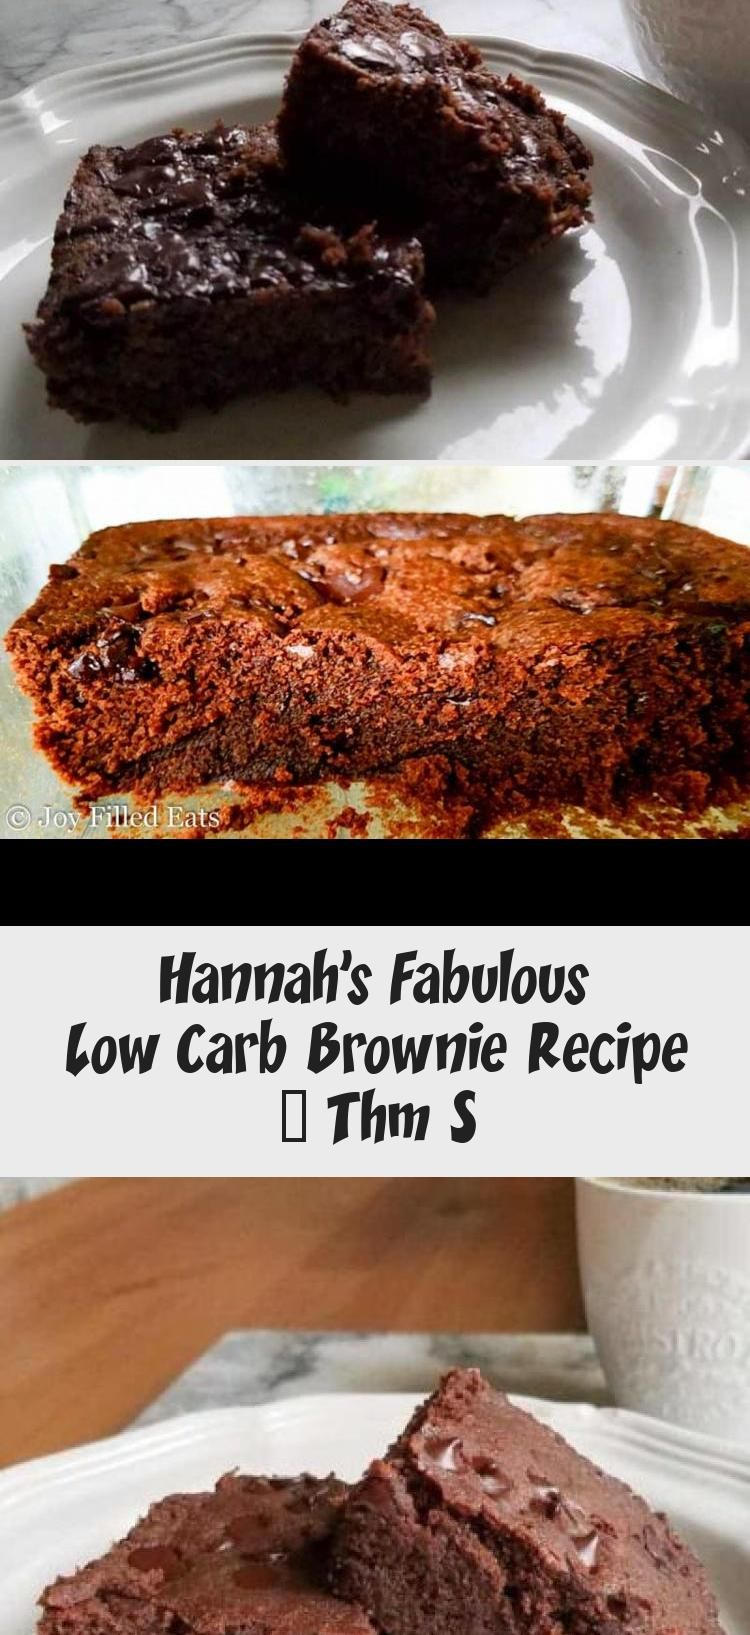 Hannah S Fabulous Low Carb Brownie Recipe Thm S In 2020